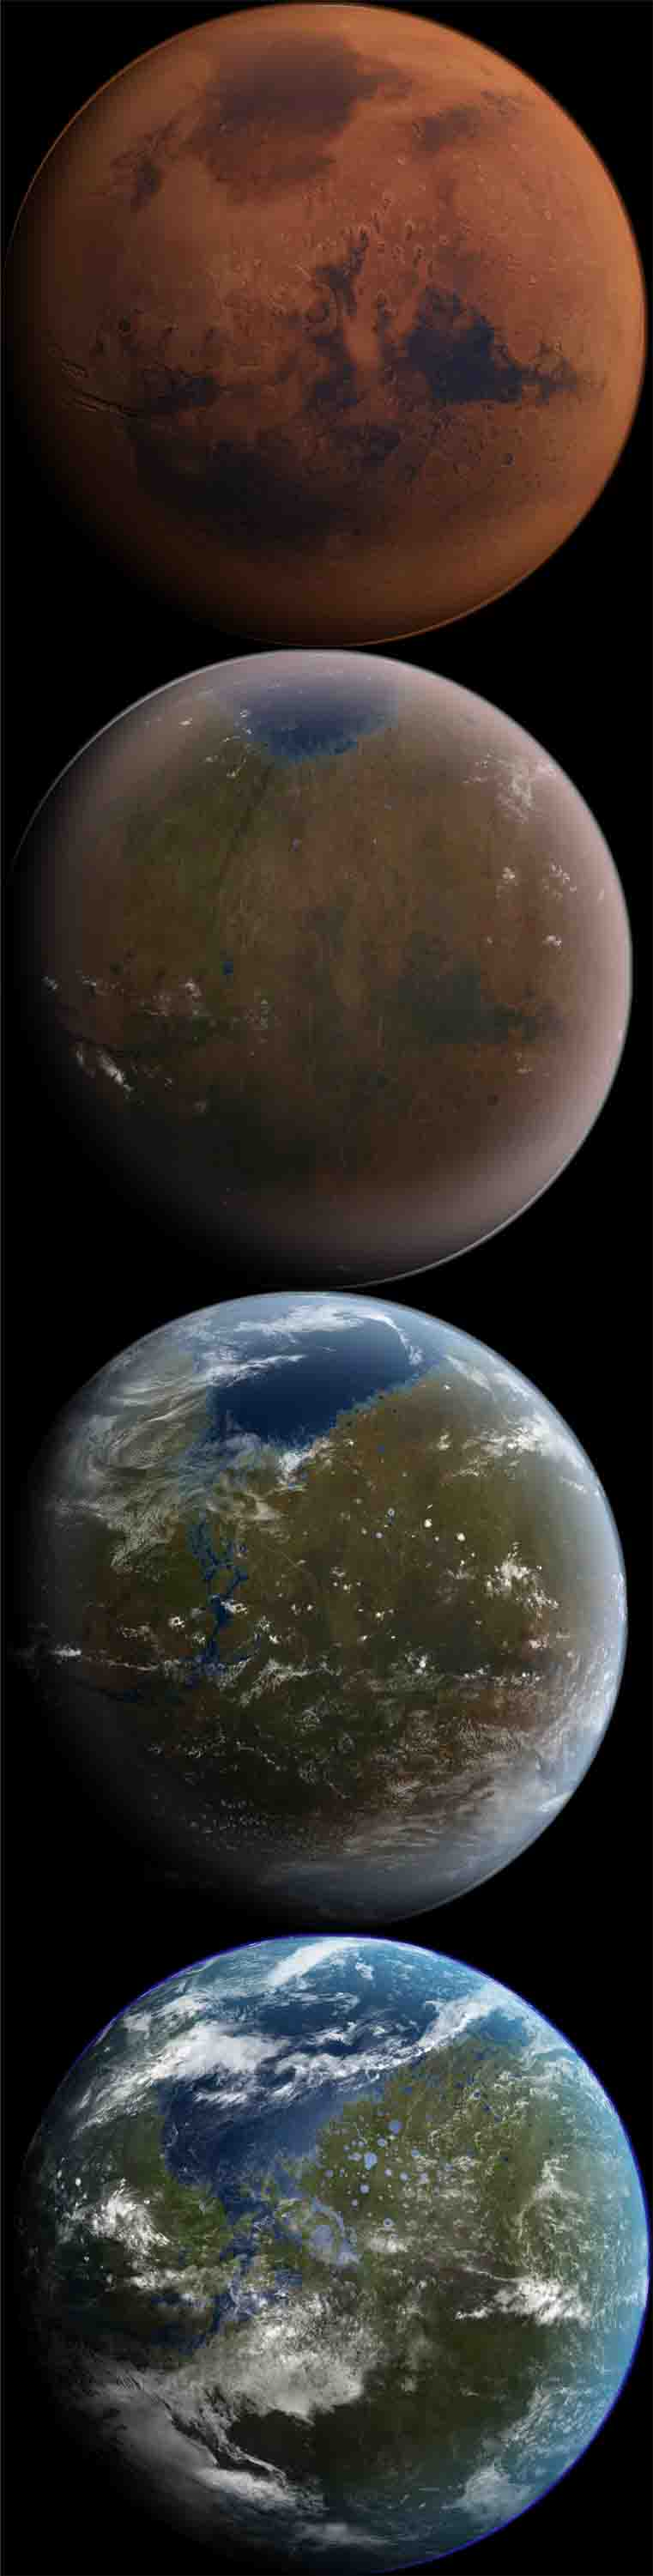 Mars being Terraformed